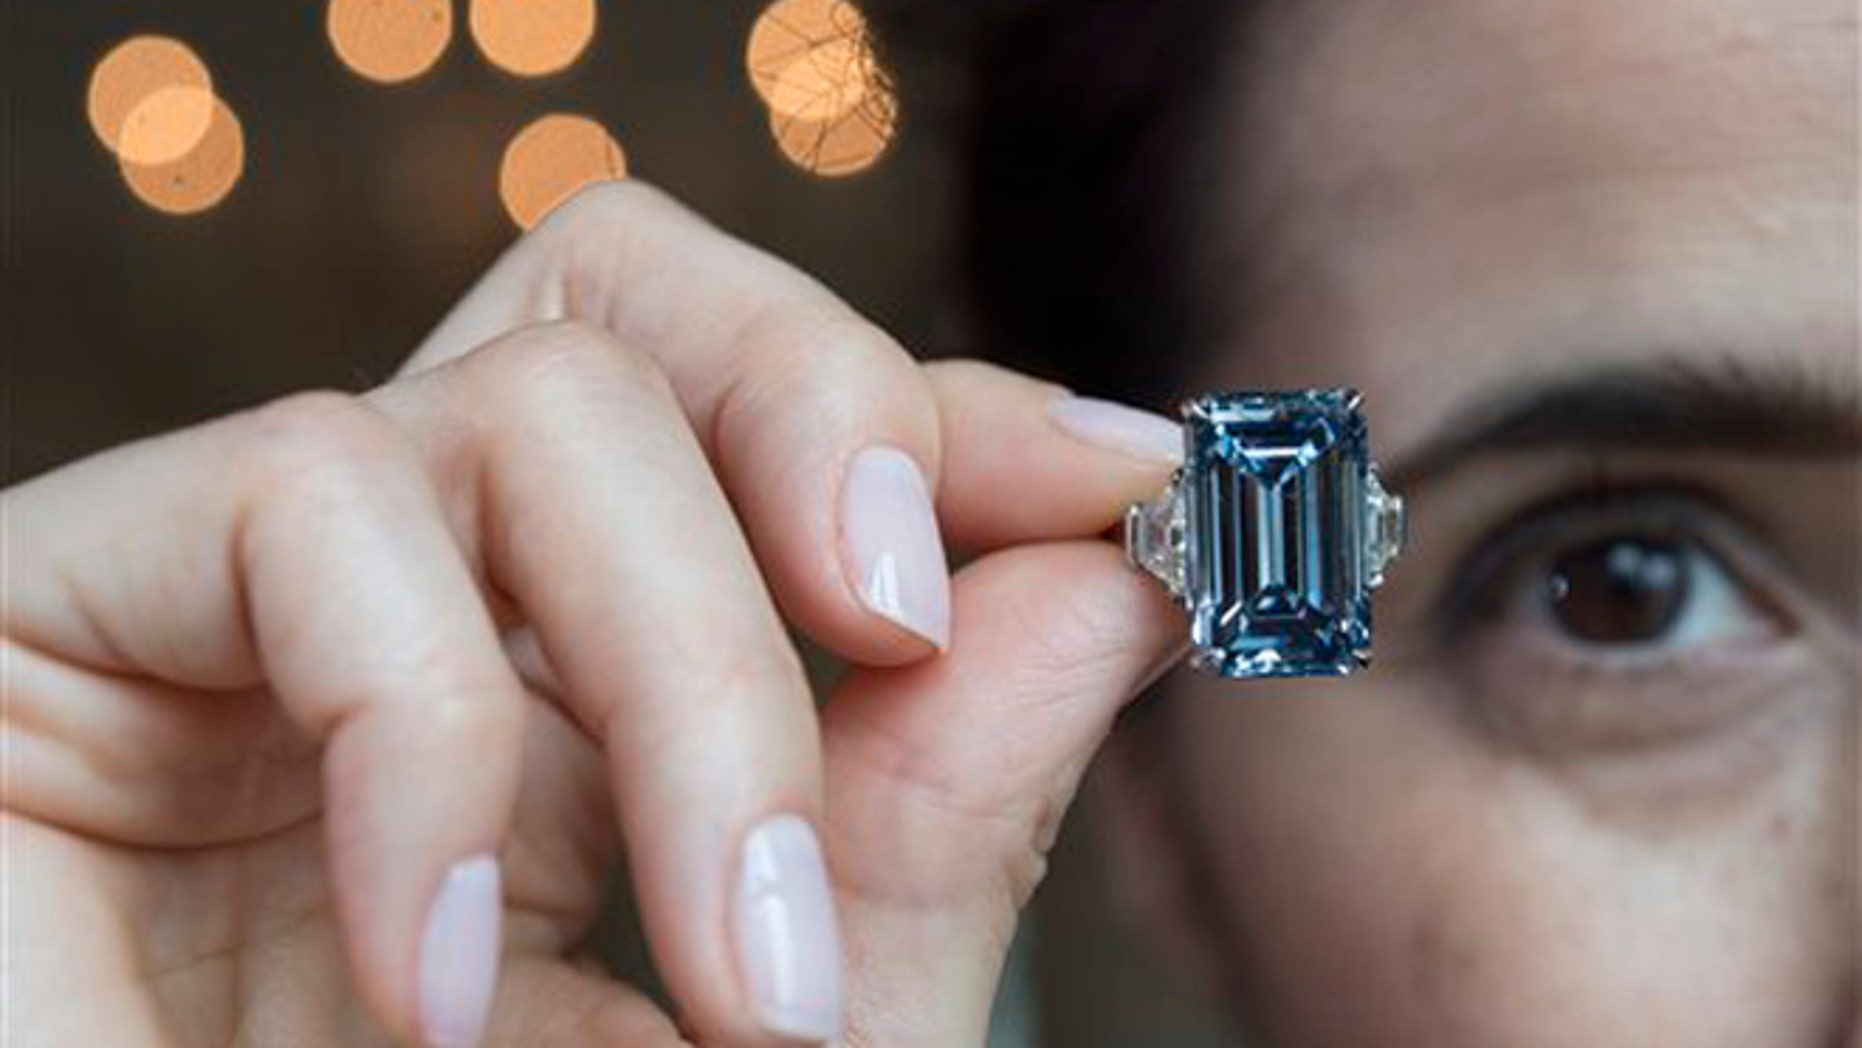 A Christie's employee holds Oppenheimer Blue diamond of 14.62 carats, which is estimated to be sold between 38,000,000 to 45,000,000 US Dollar, during a preview at the auction house Christie's, in Geneva, Switzerland, Thursday, May 12, 2016. The auction will take place on May 18, 2016 in Geneva. (Martial Trezzini/Keystone via AP)